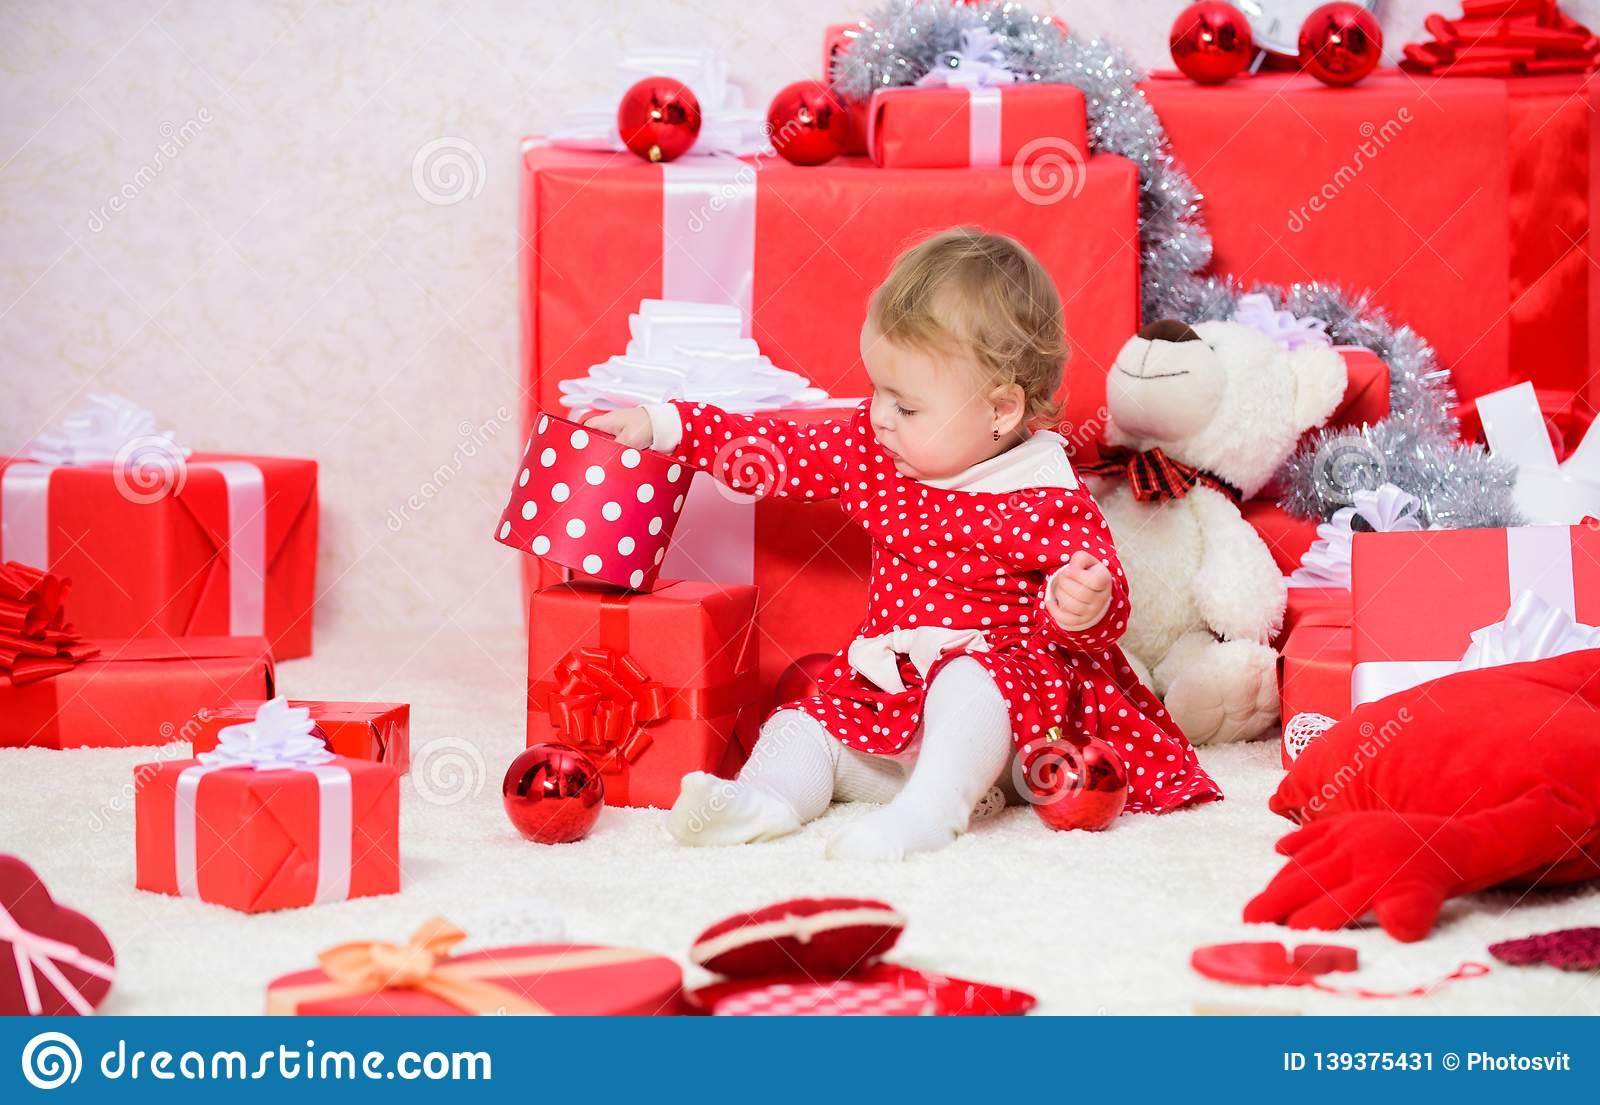 Christmas Activities For Toddlers Christmas Gifts For Toddler